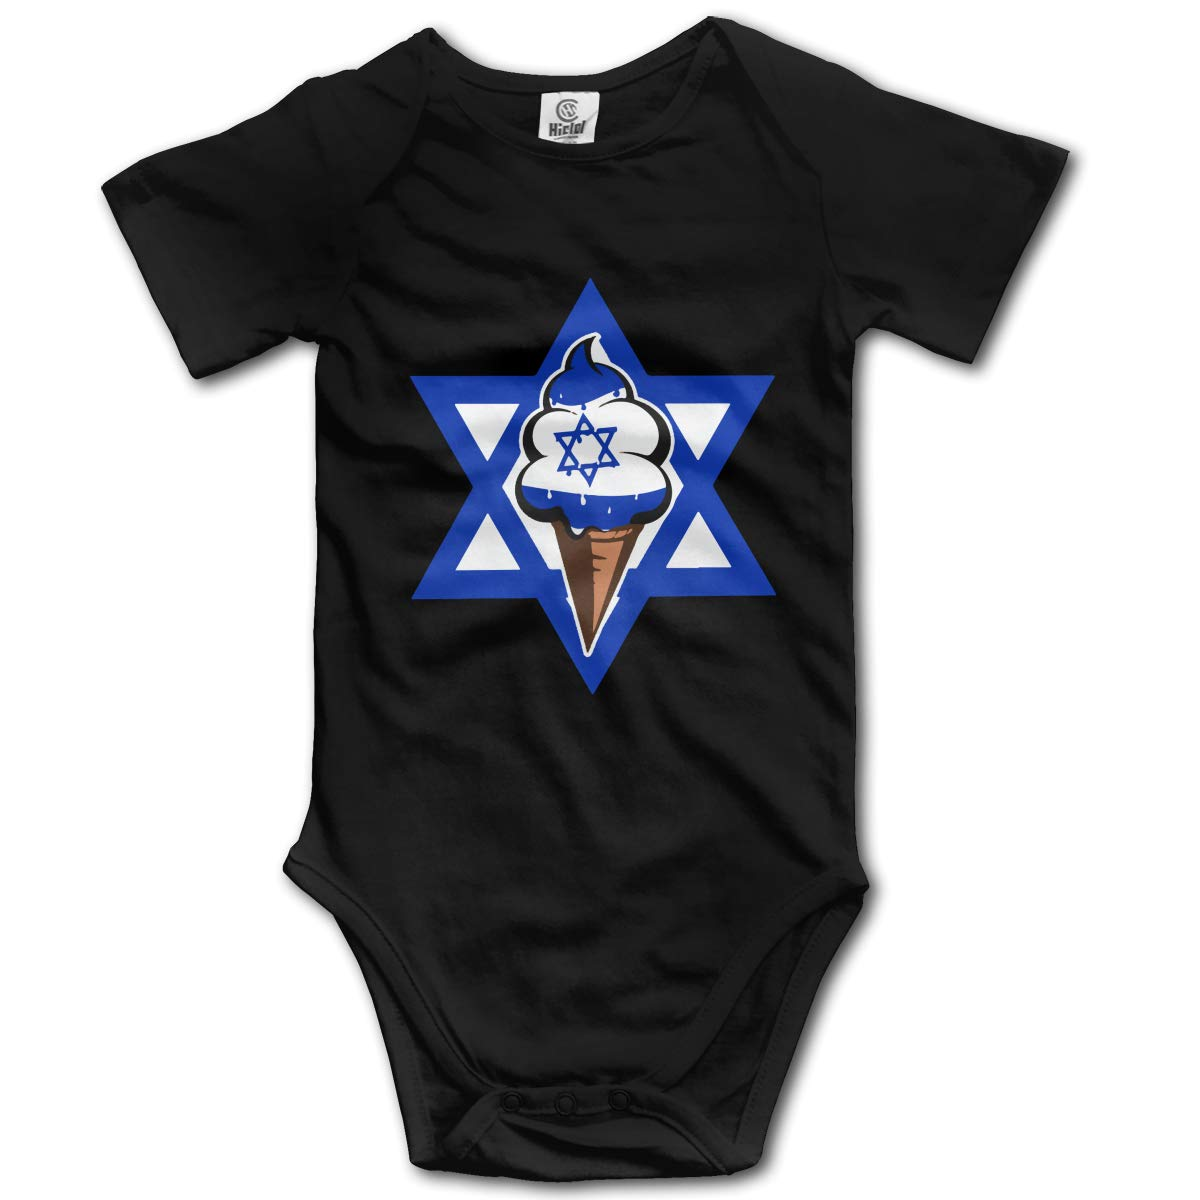 Toddler Israeli Flag Funny Ice Cream Short Sleeve Climbing Clothes Bodysuits Jumpsuit Suit 6-24 Months